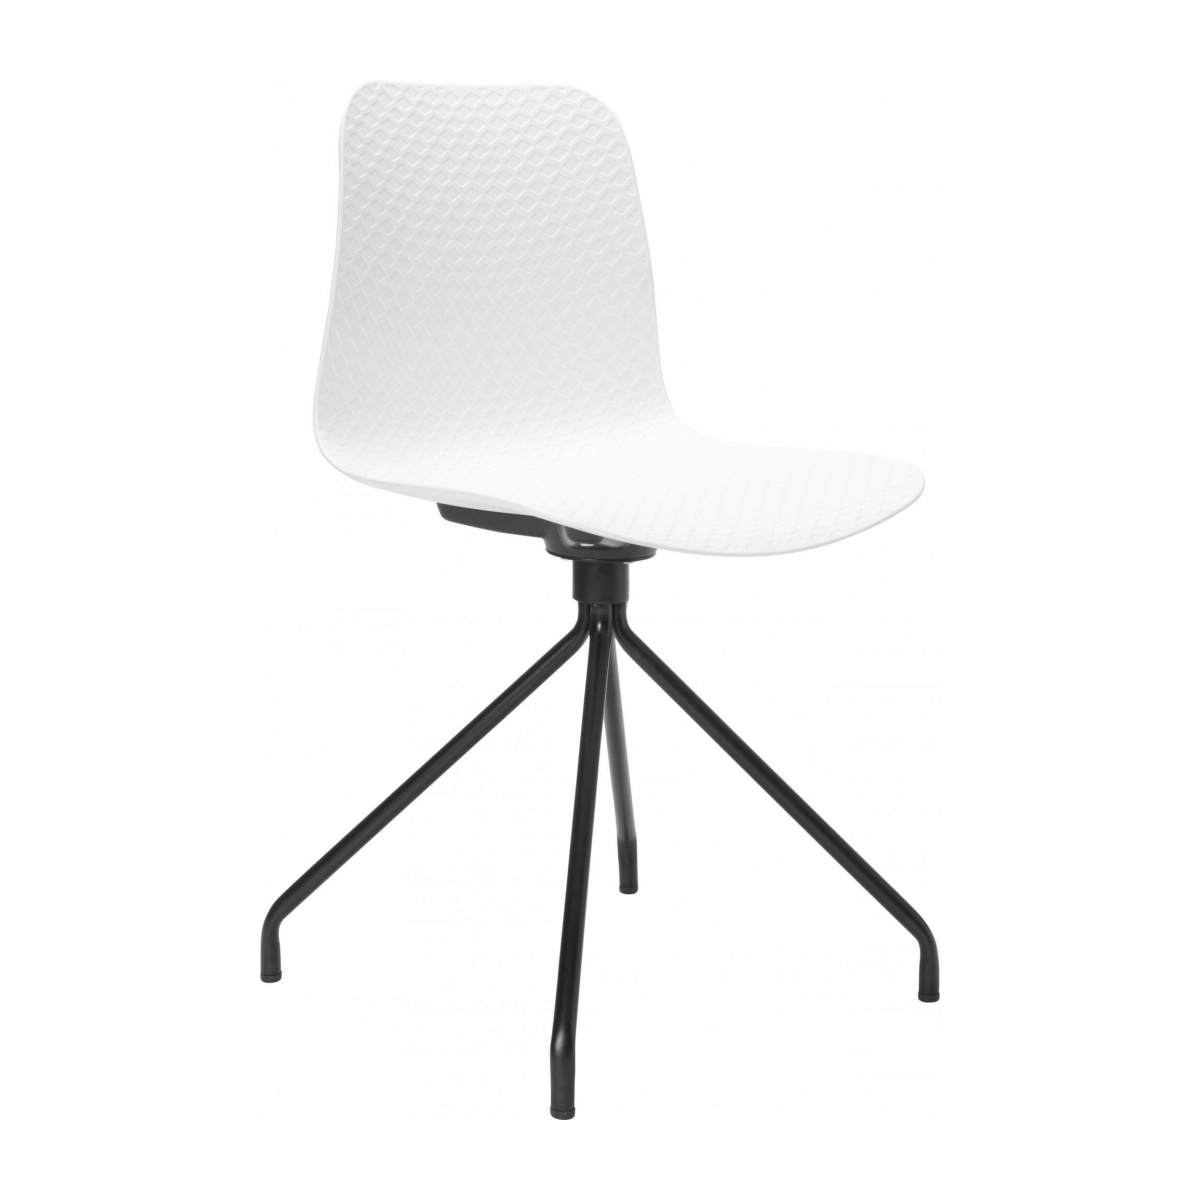 White chair in polypropylene and lacquered steel legs n°2